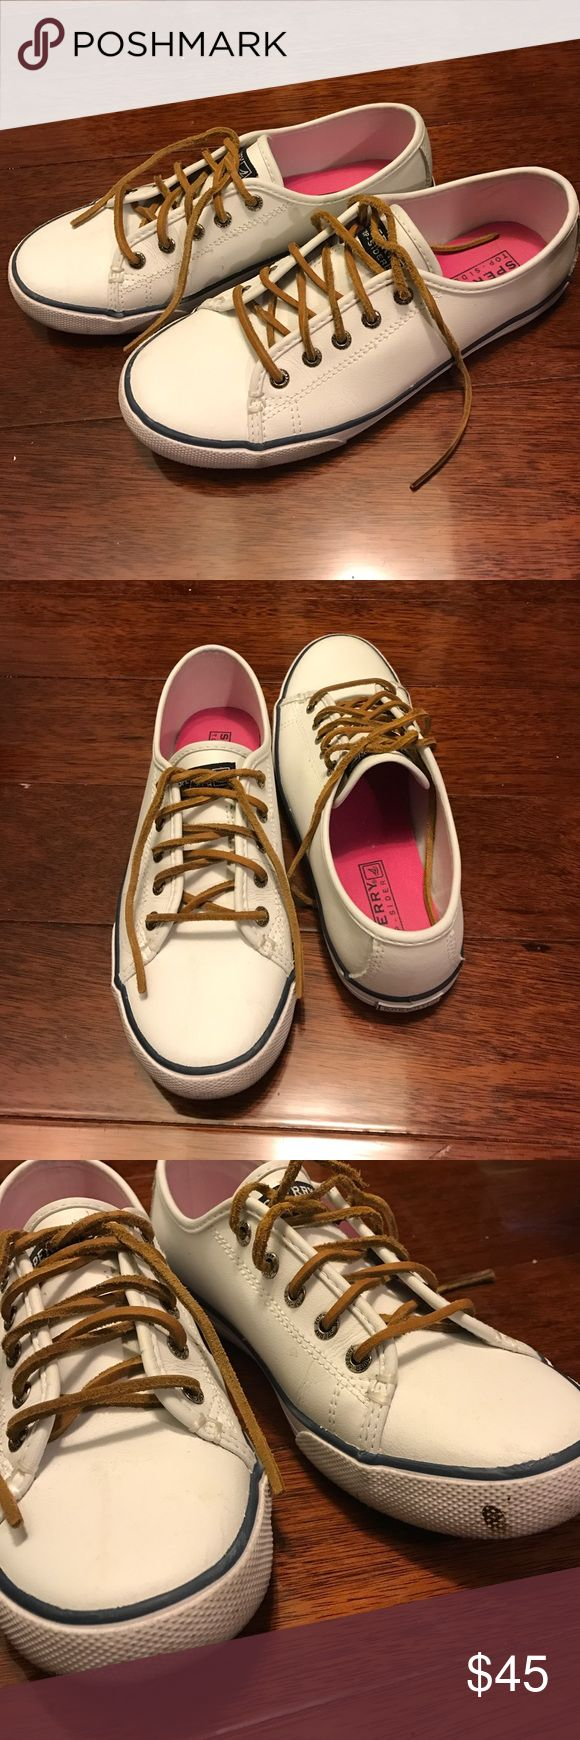 """White Sperry Top-sider Leather Lace-up boat shoes Worn a few times, super comfortable. I'm just trying to clean out my closet. There's a dirt stain as pictured in the last photo, which I can attempt to scrub off with a toothbrush of sold.  It says """"3.5M"""" on the shoes, but it fits a US 5.5 and is equivalent to a U.K. 35.5. Sperry Top-Sider Shoes Moccasins"""